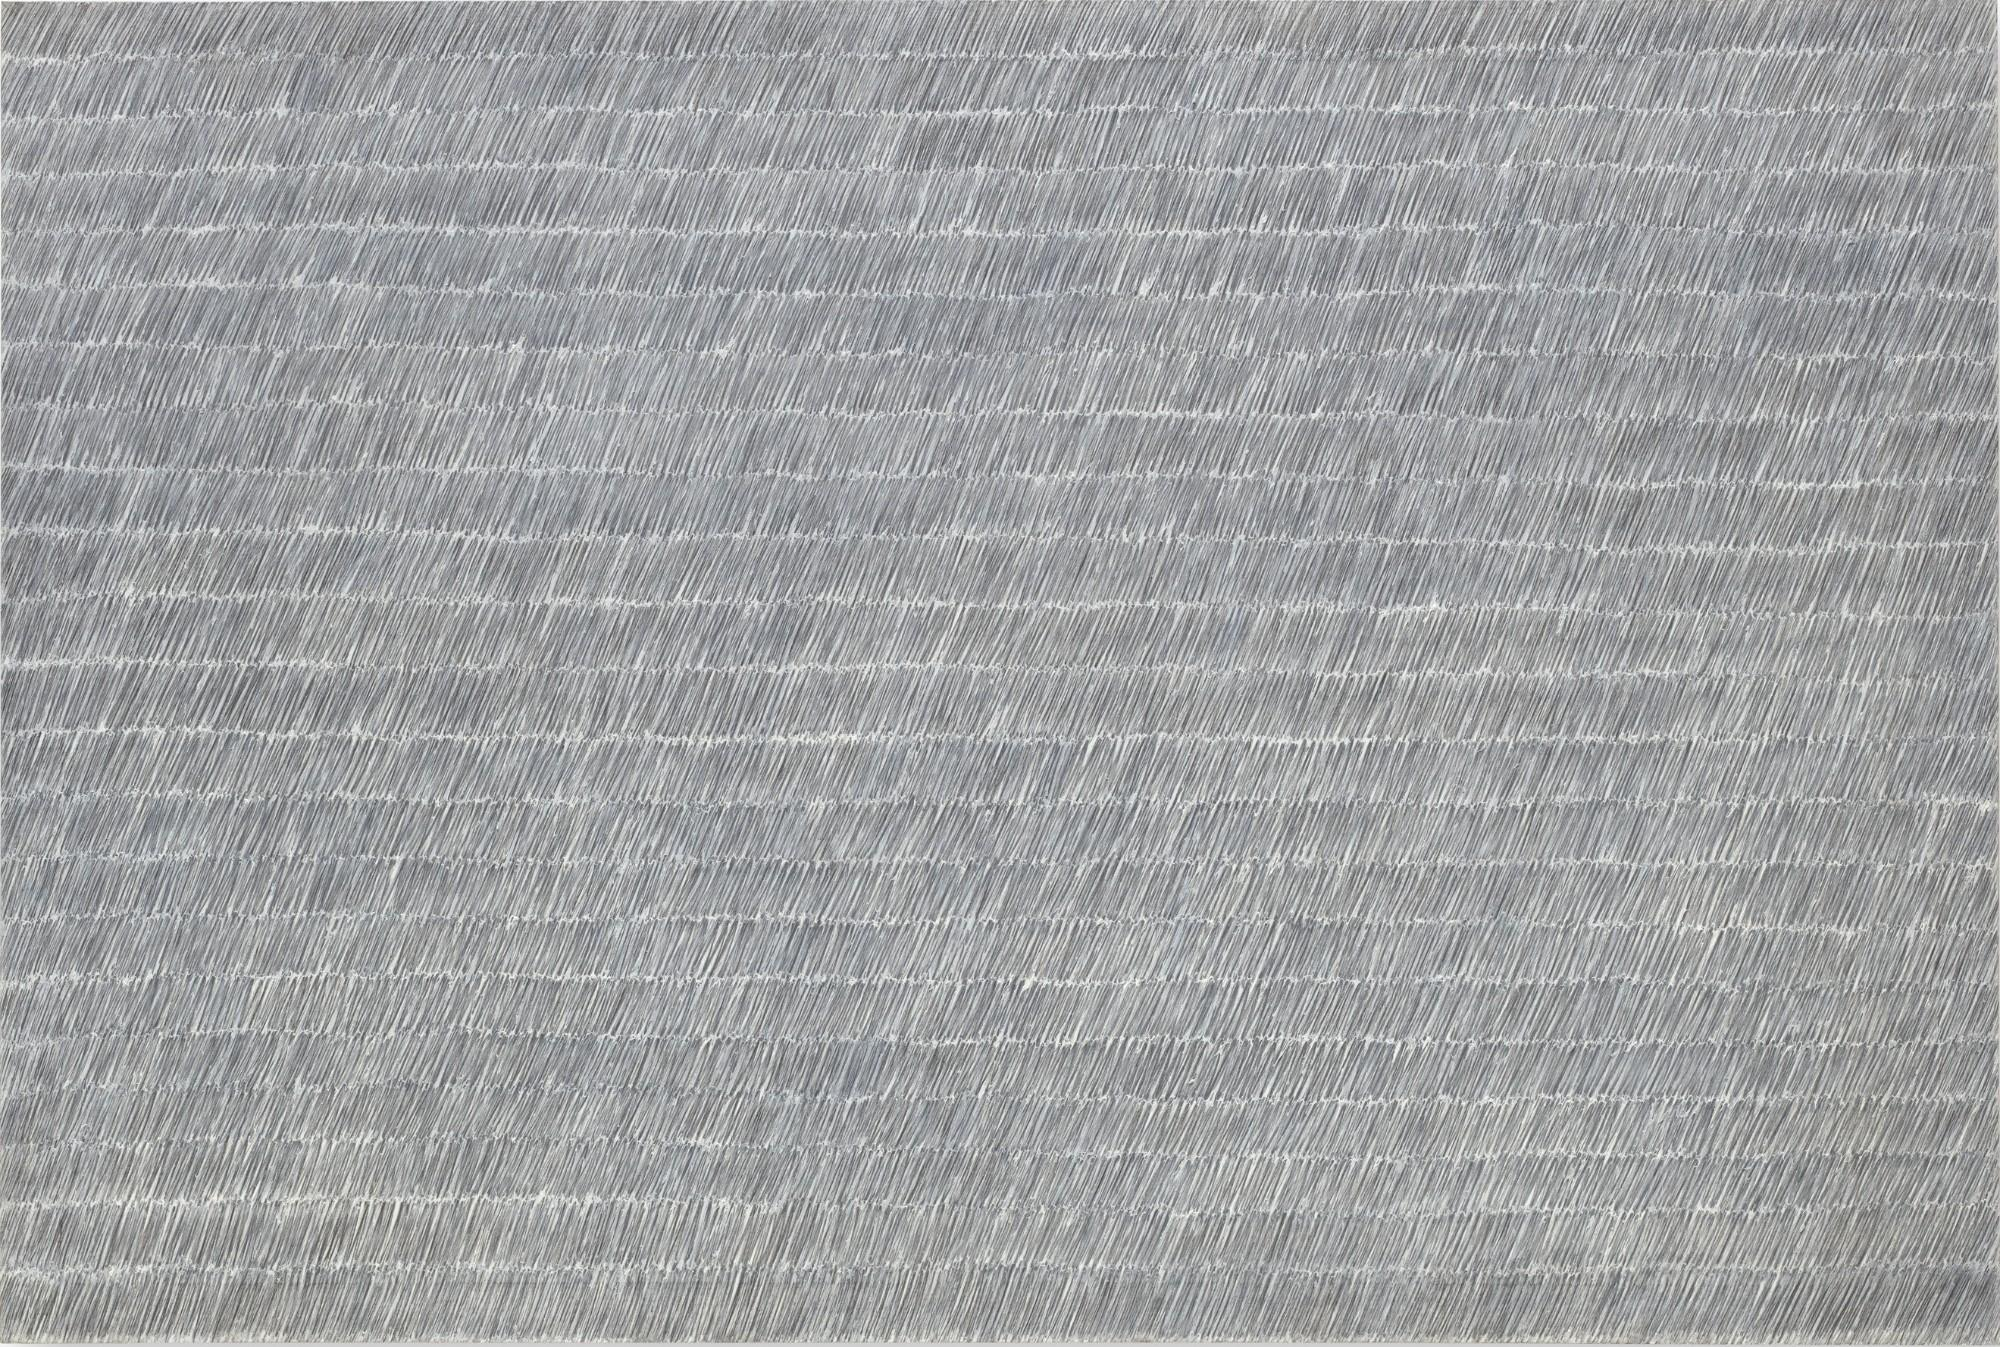 Park Seo-Bo, Ecriture No. 55-73, 1973. Graphite and oil on canvas.